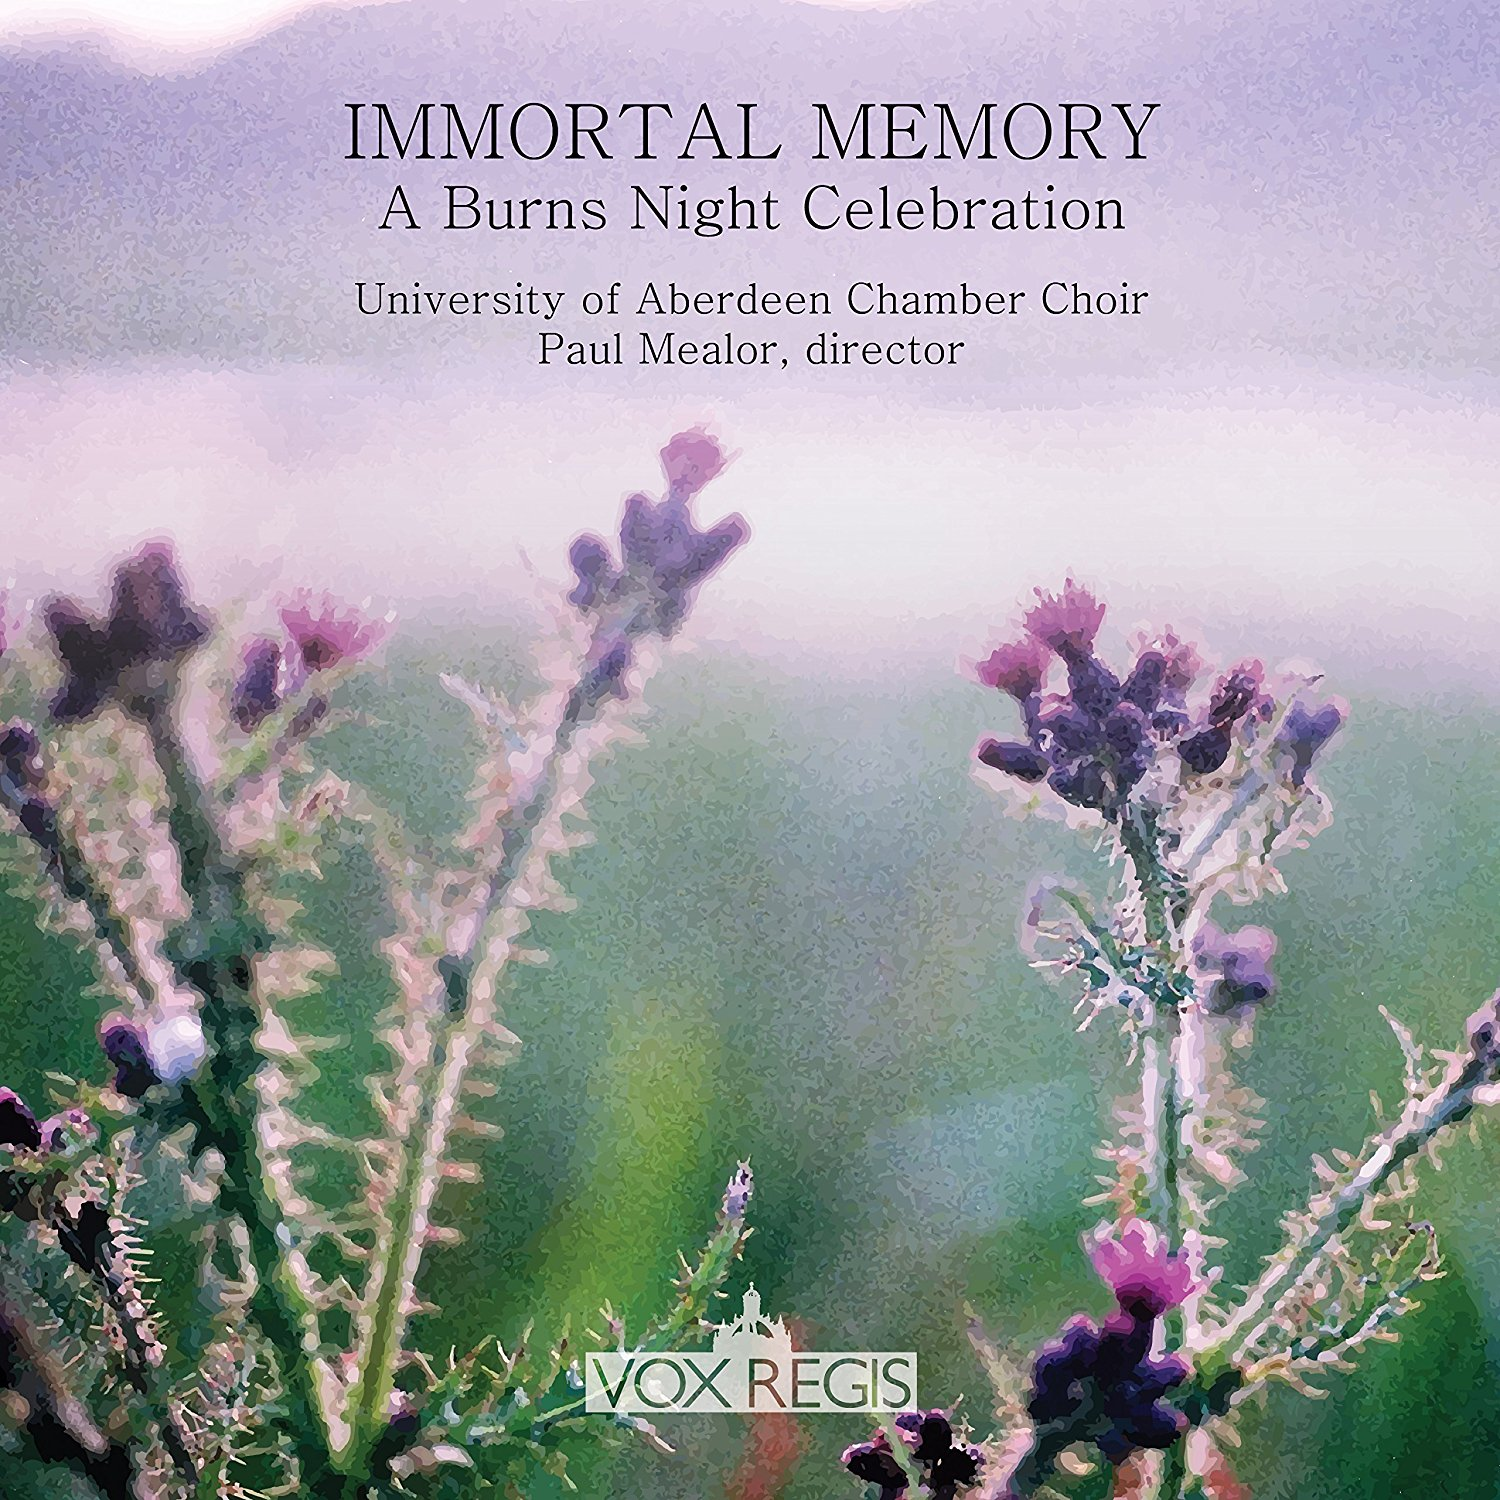 Immortal Memory Paul Mealor